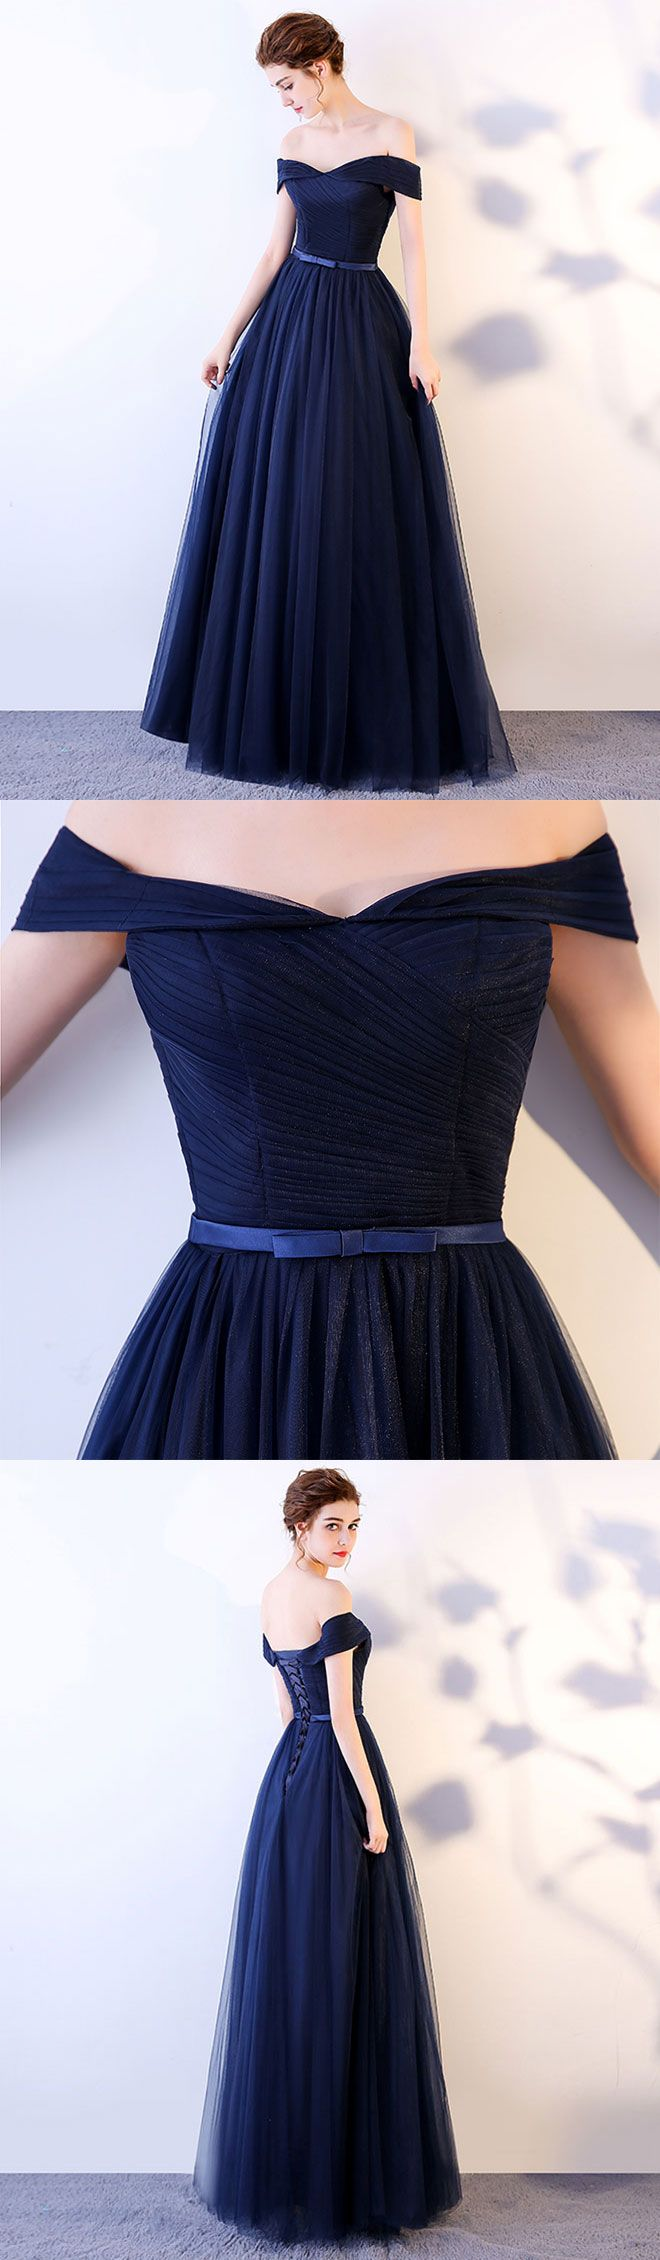 Dark blue long prom dress blue tulle evening dress long prom